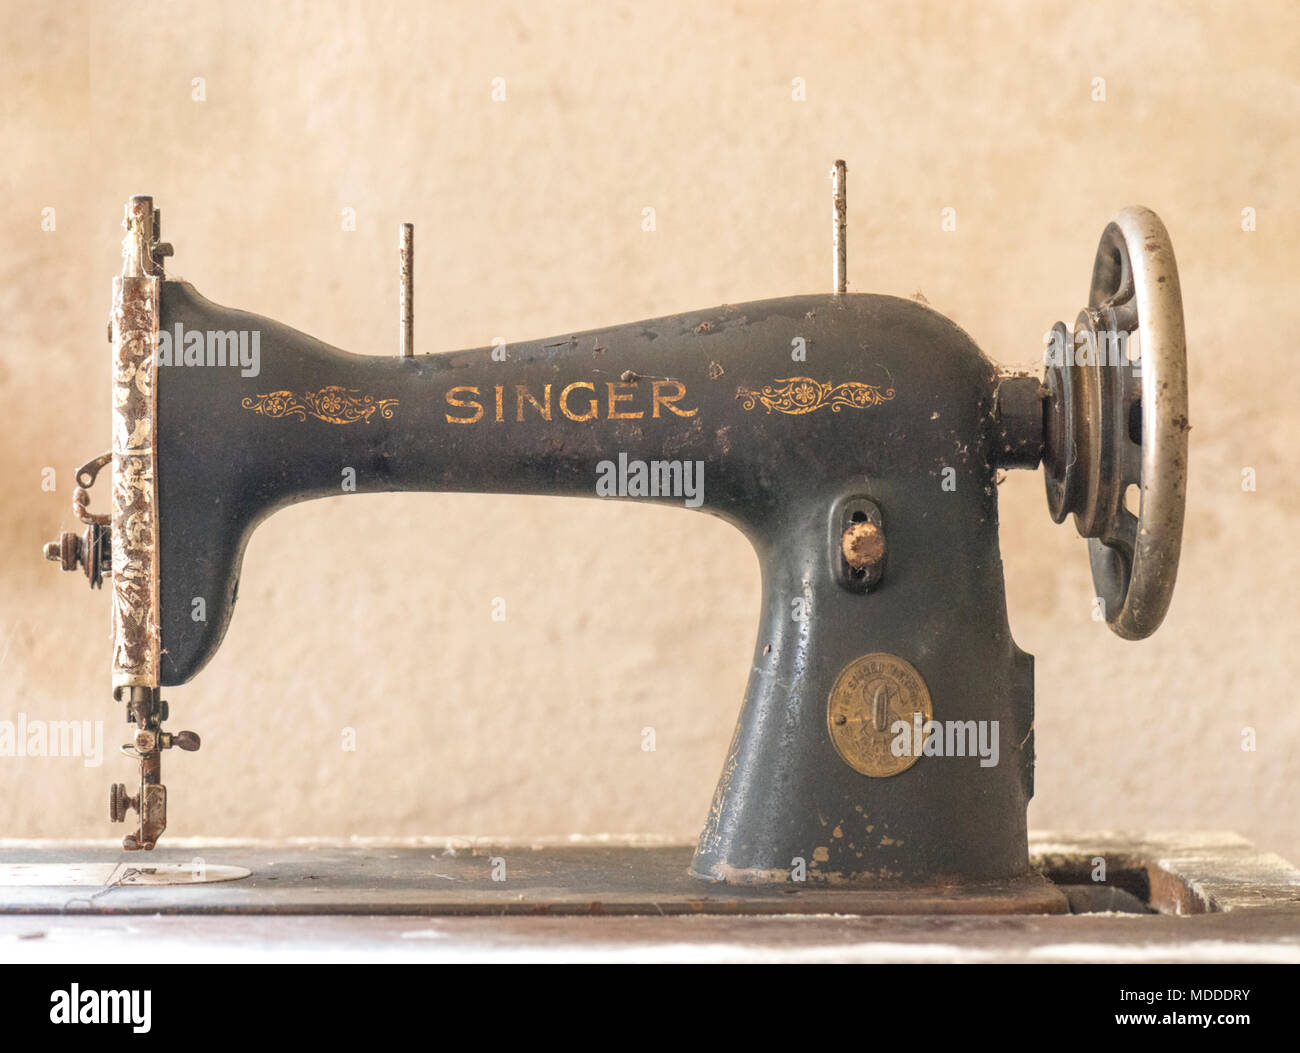 Vintage Singer Sewing Machine Stock Photos & Vintage Singer